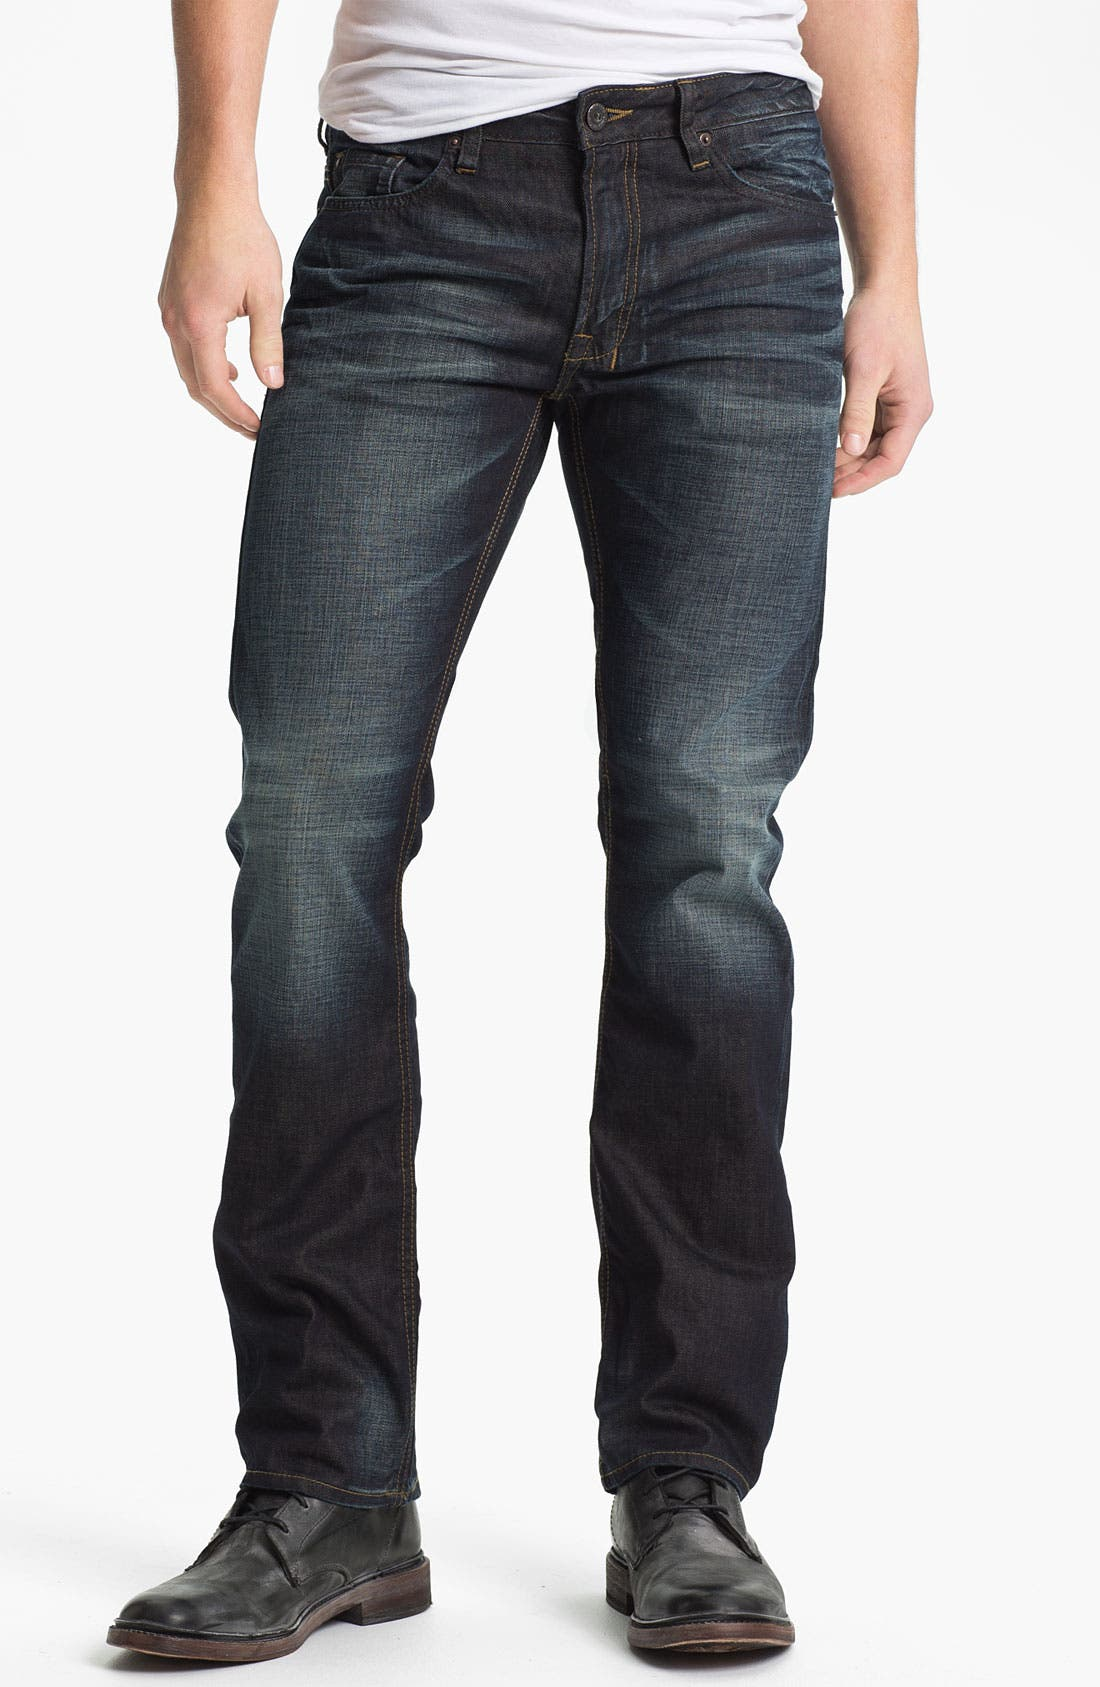 Main Image - Buffalo Jeans 'Six' Slim Straight Leg Jeans (Veined/Dirty) (Online Exclusive)